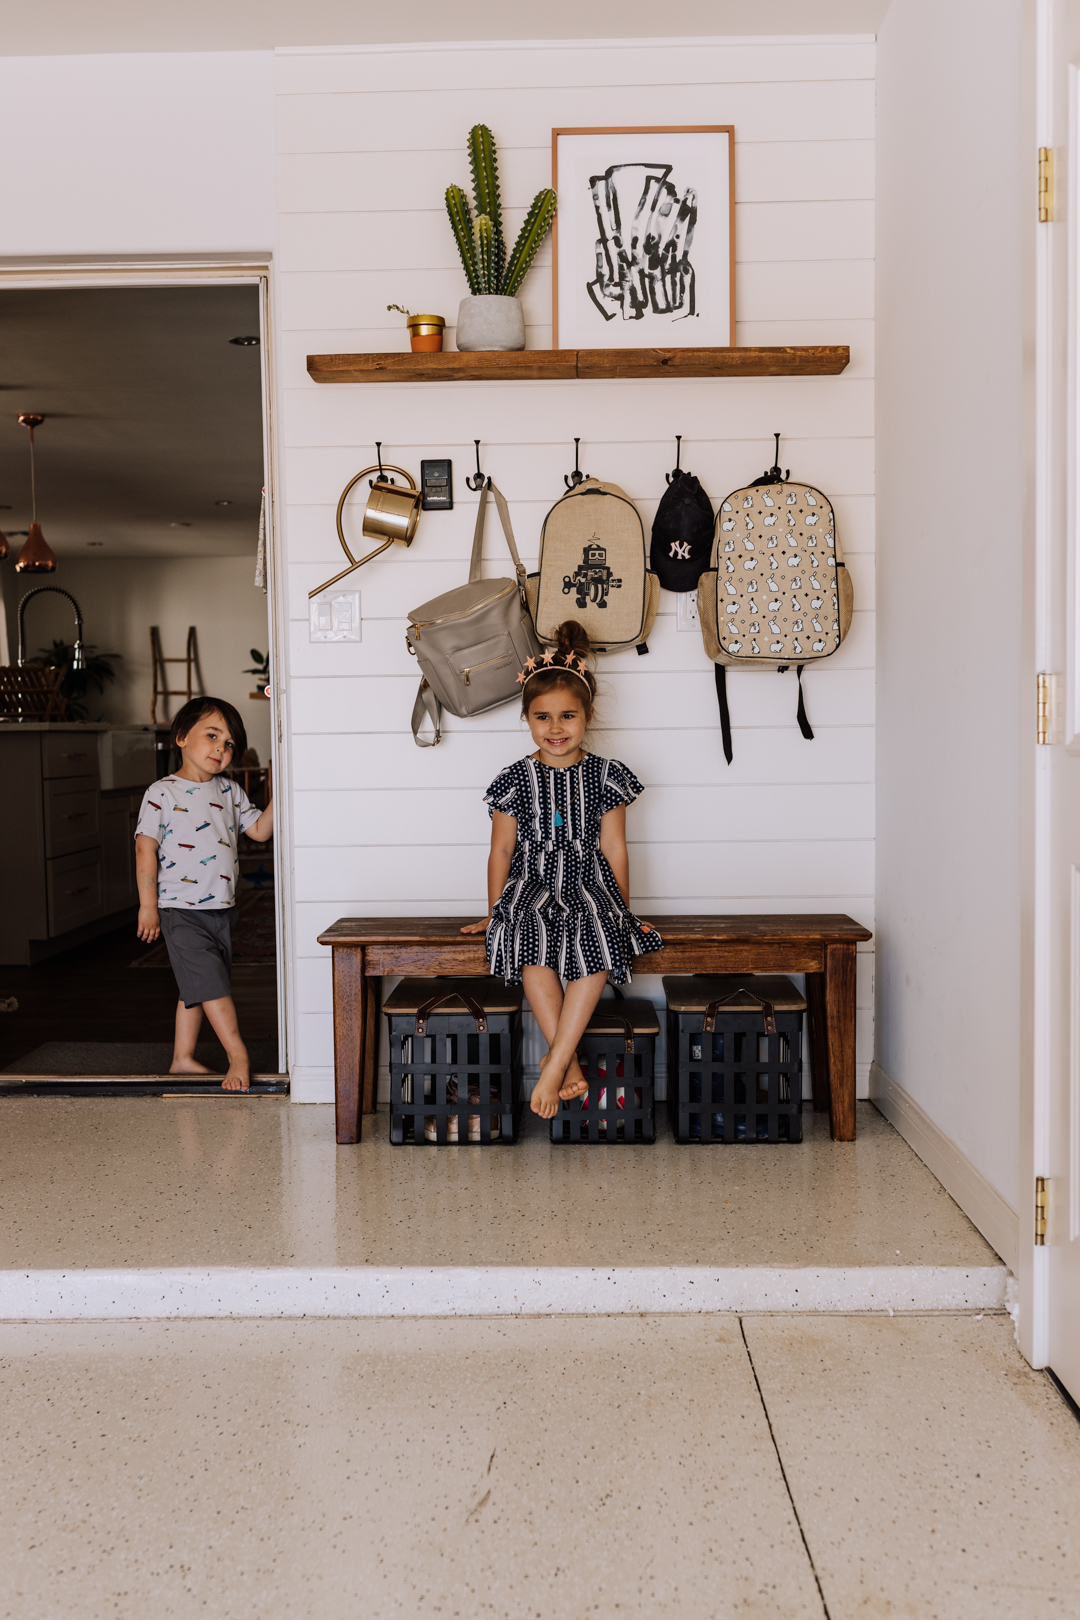 coming home from school, the kids hang their backpacks in the garage | thelovedesignedlife.com #thedailymoments #home #garageorganization #interiordesign